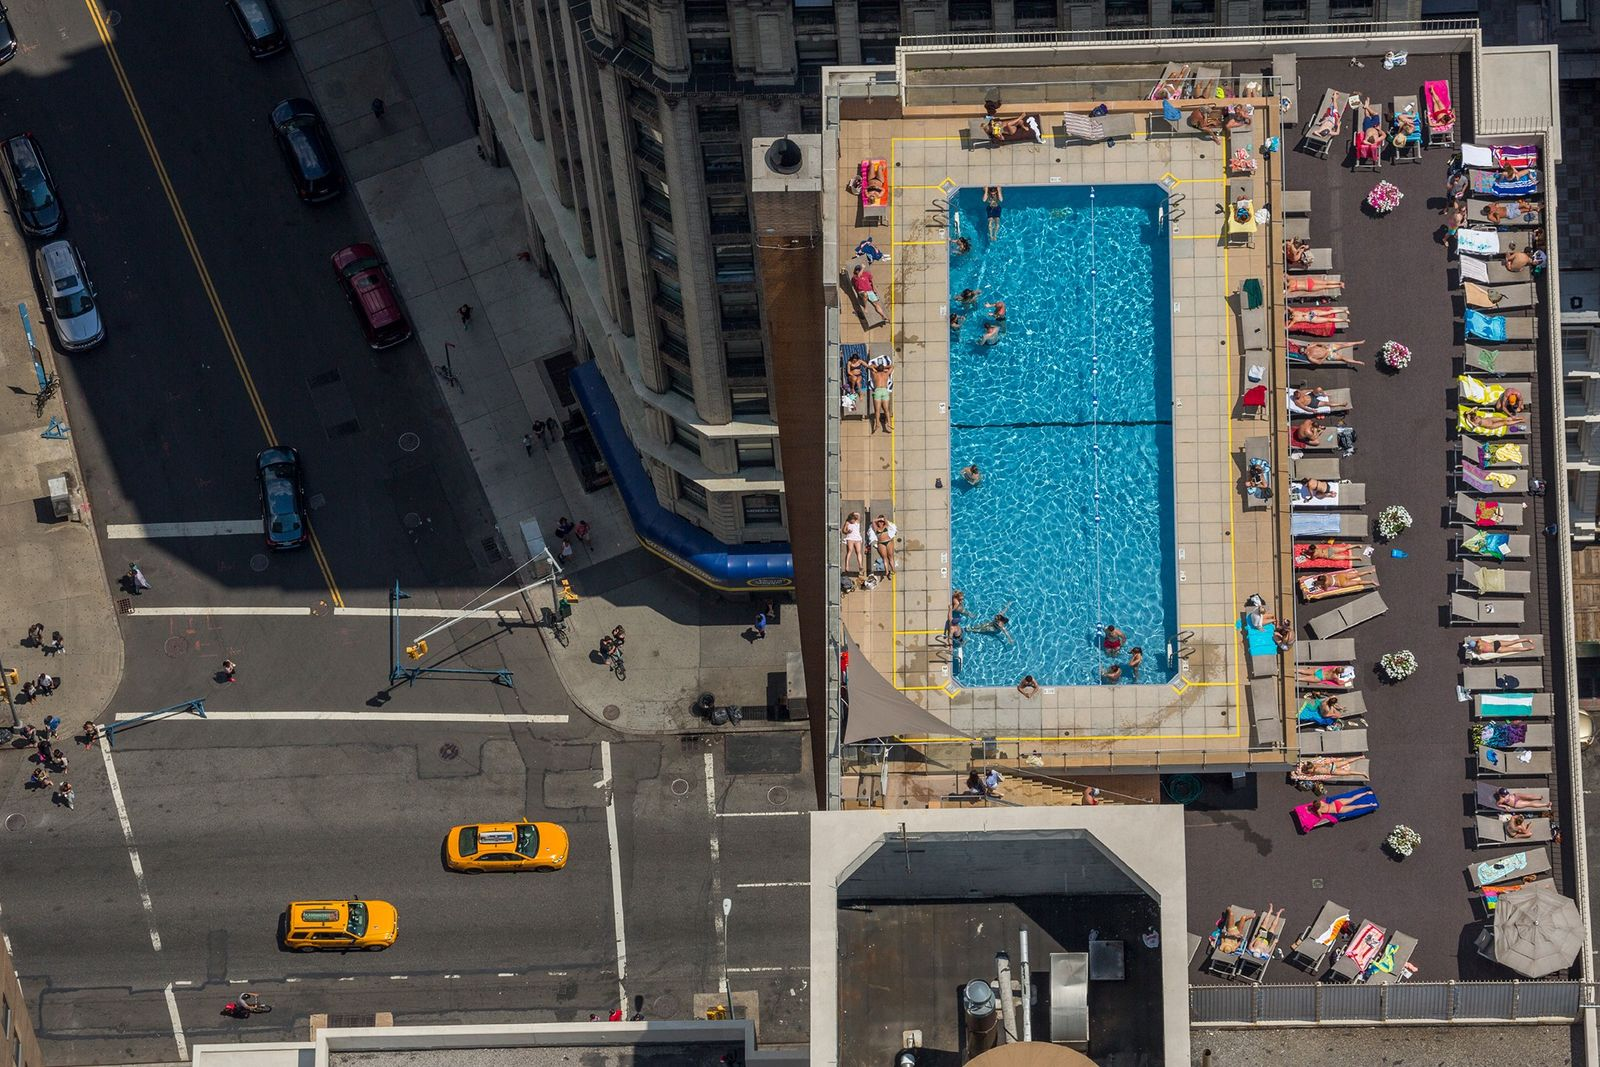 In the summer of 2014, New Yorkers escape the urban heat island in a rooftop pool ...